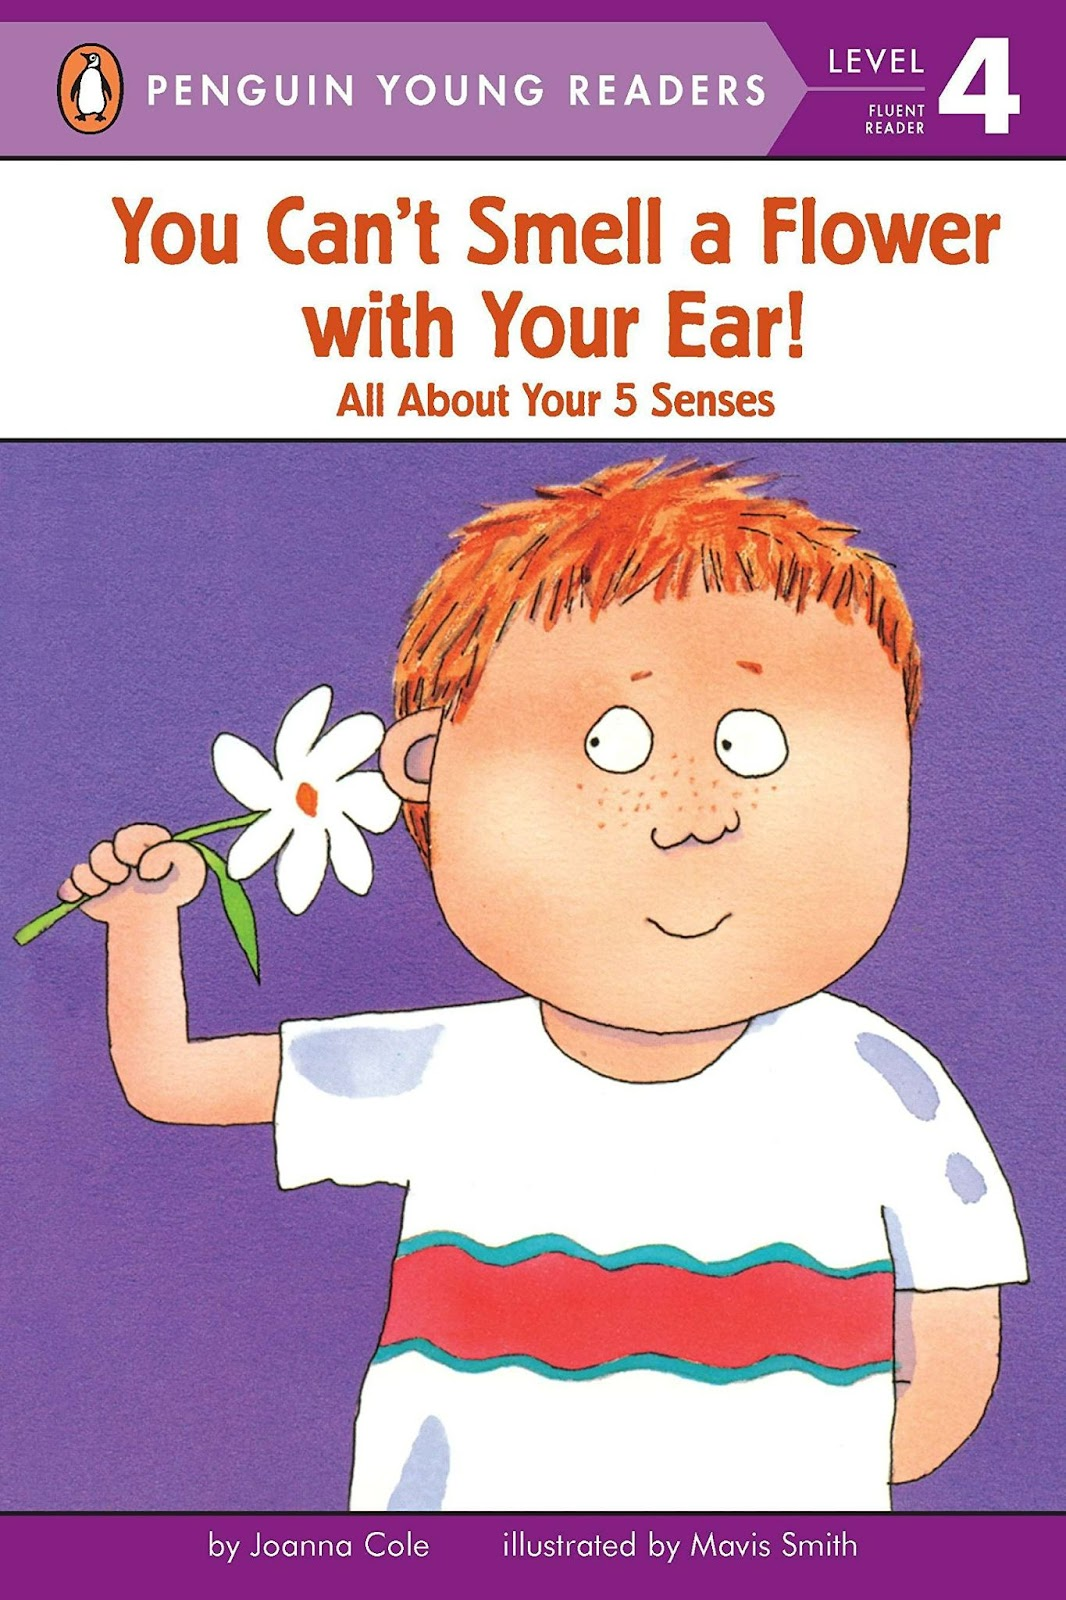 You Can't Smell A Flower With Your Ear. All About Your 5 Senses